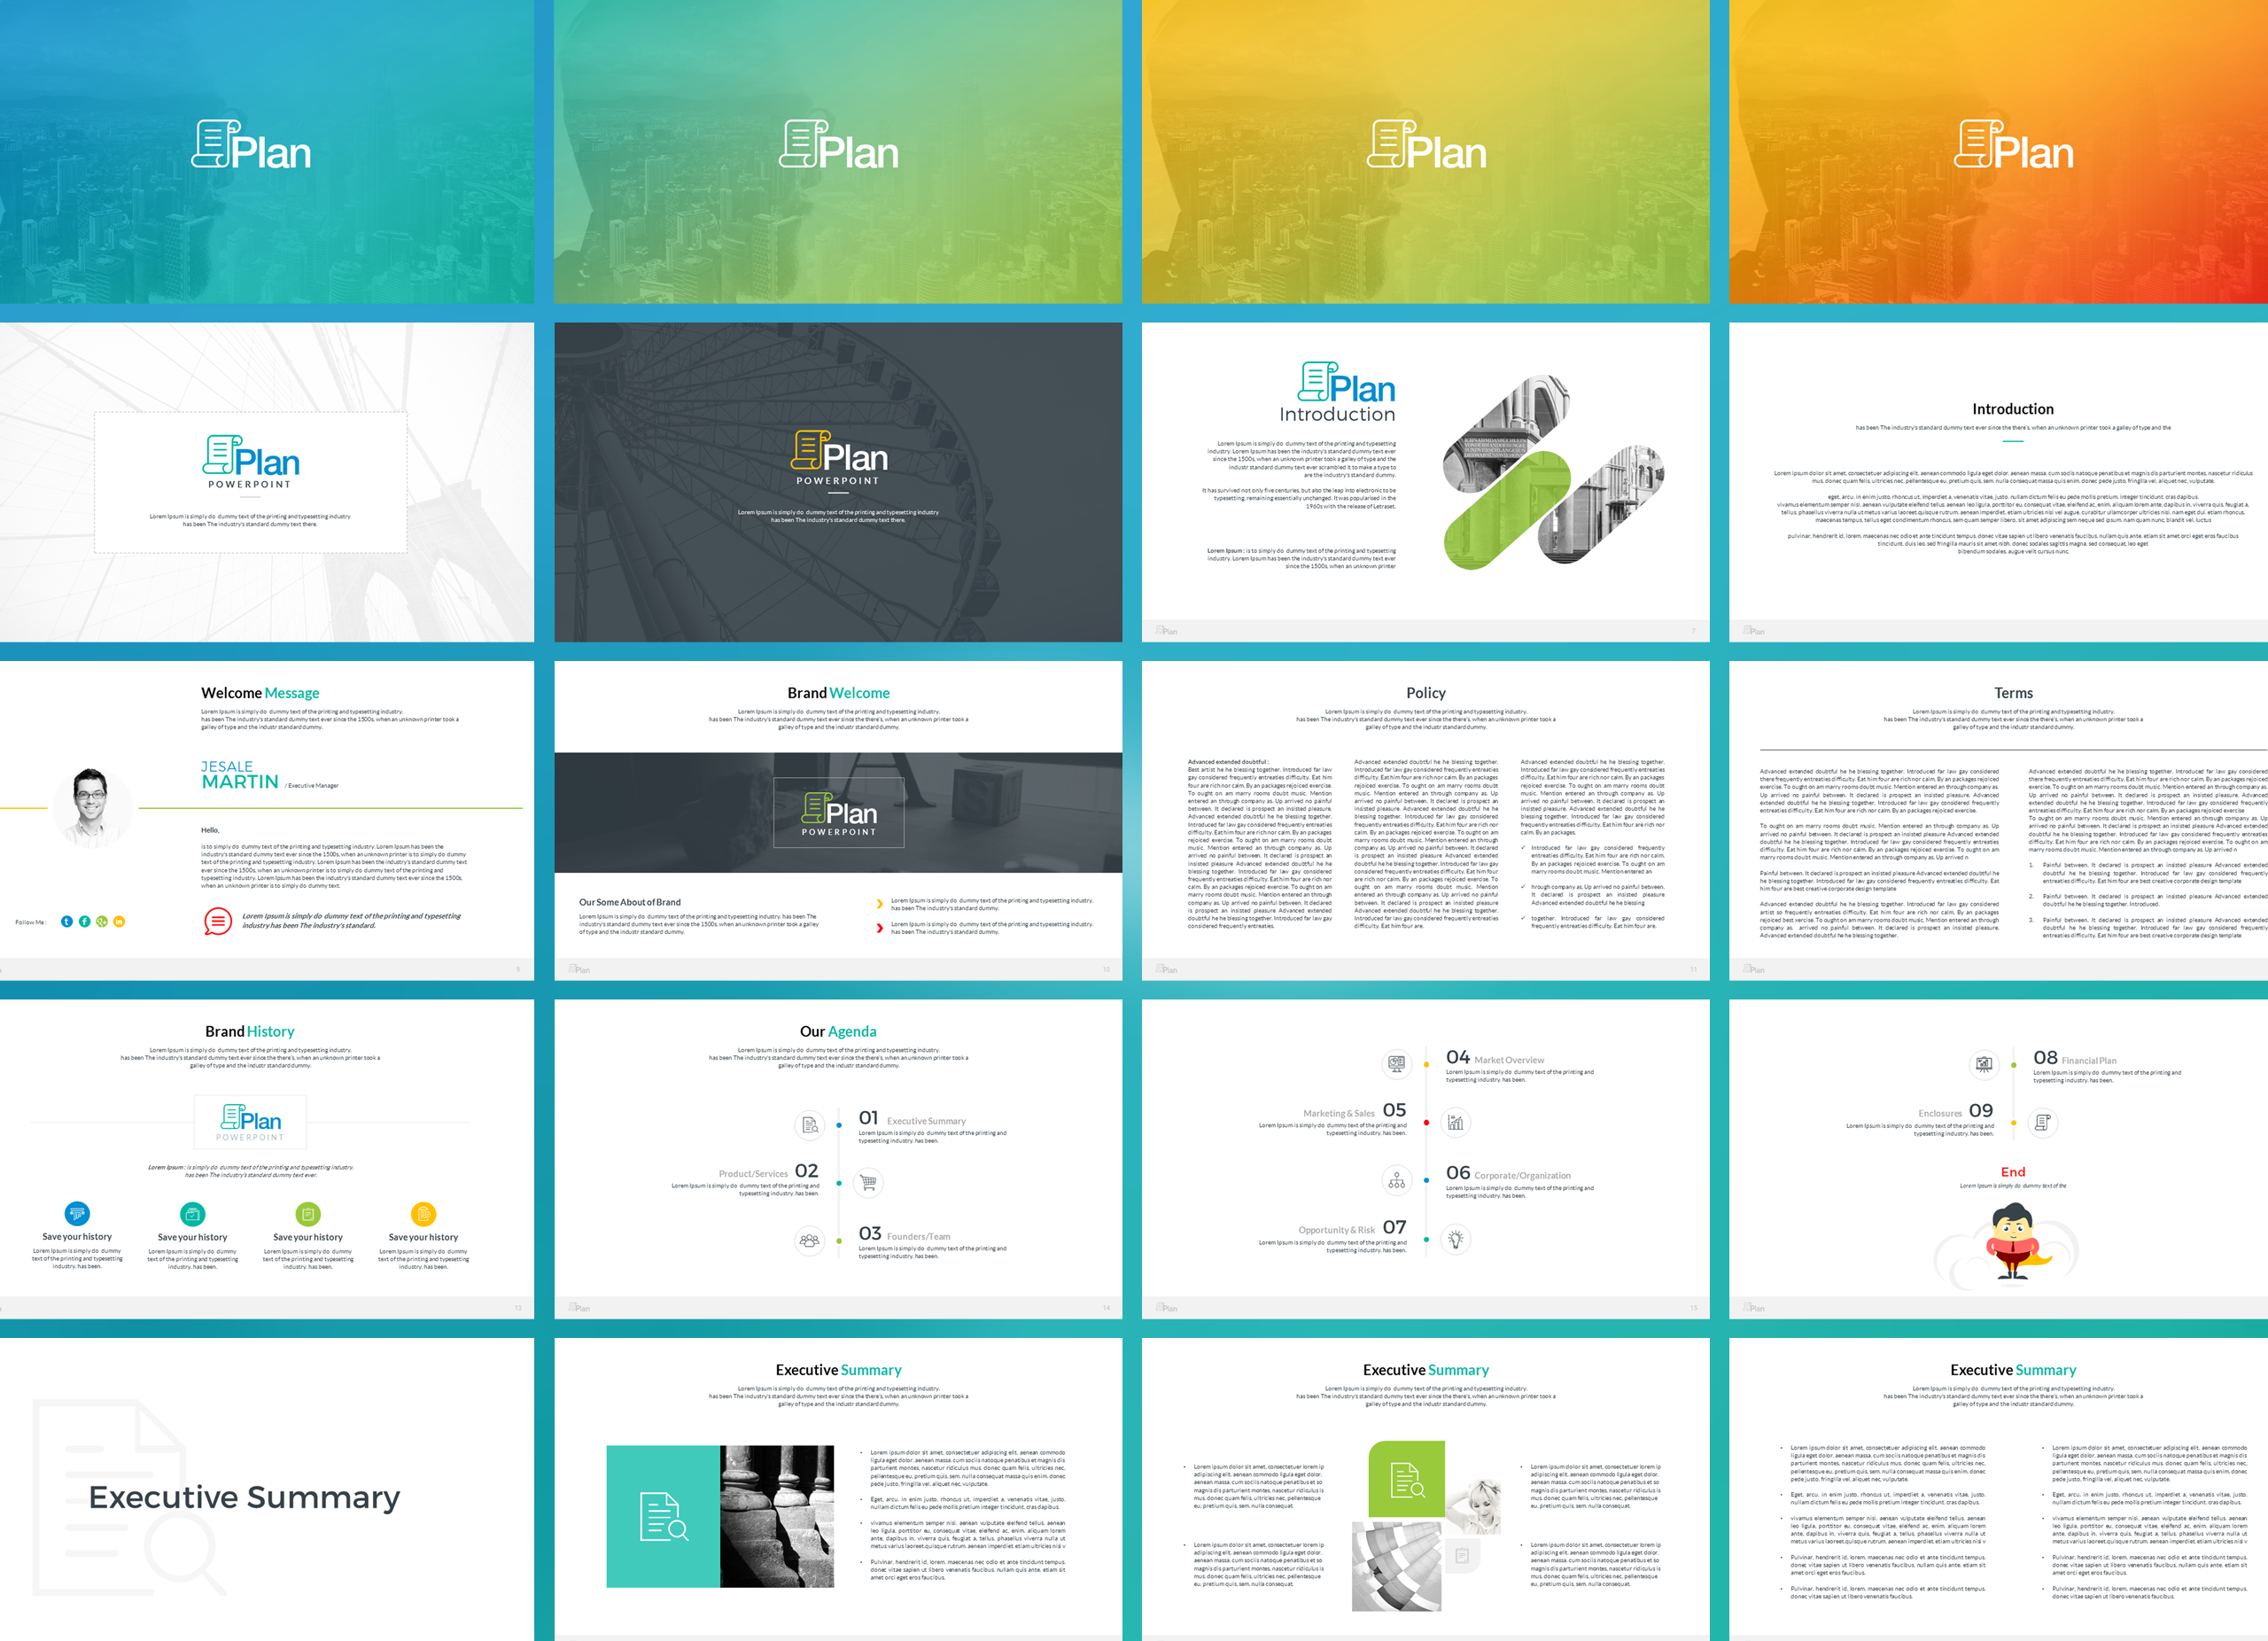 Business Plan Keynote Presentation Template example image 2